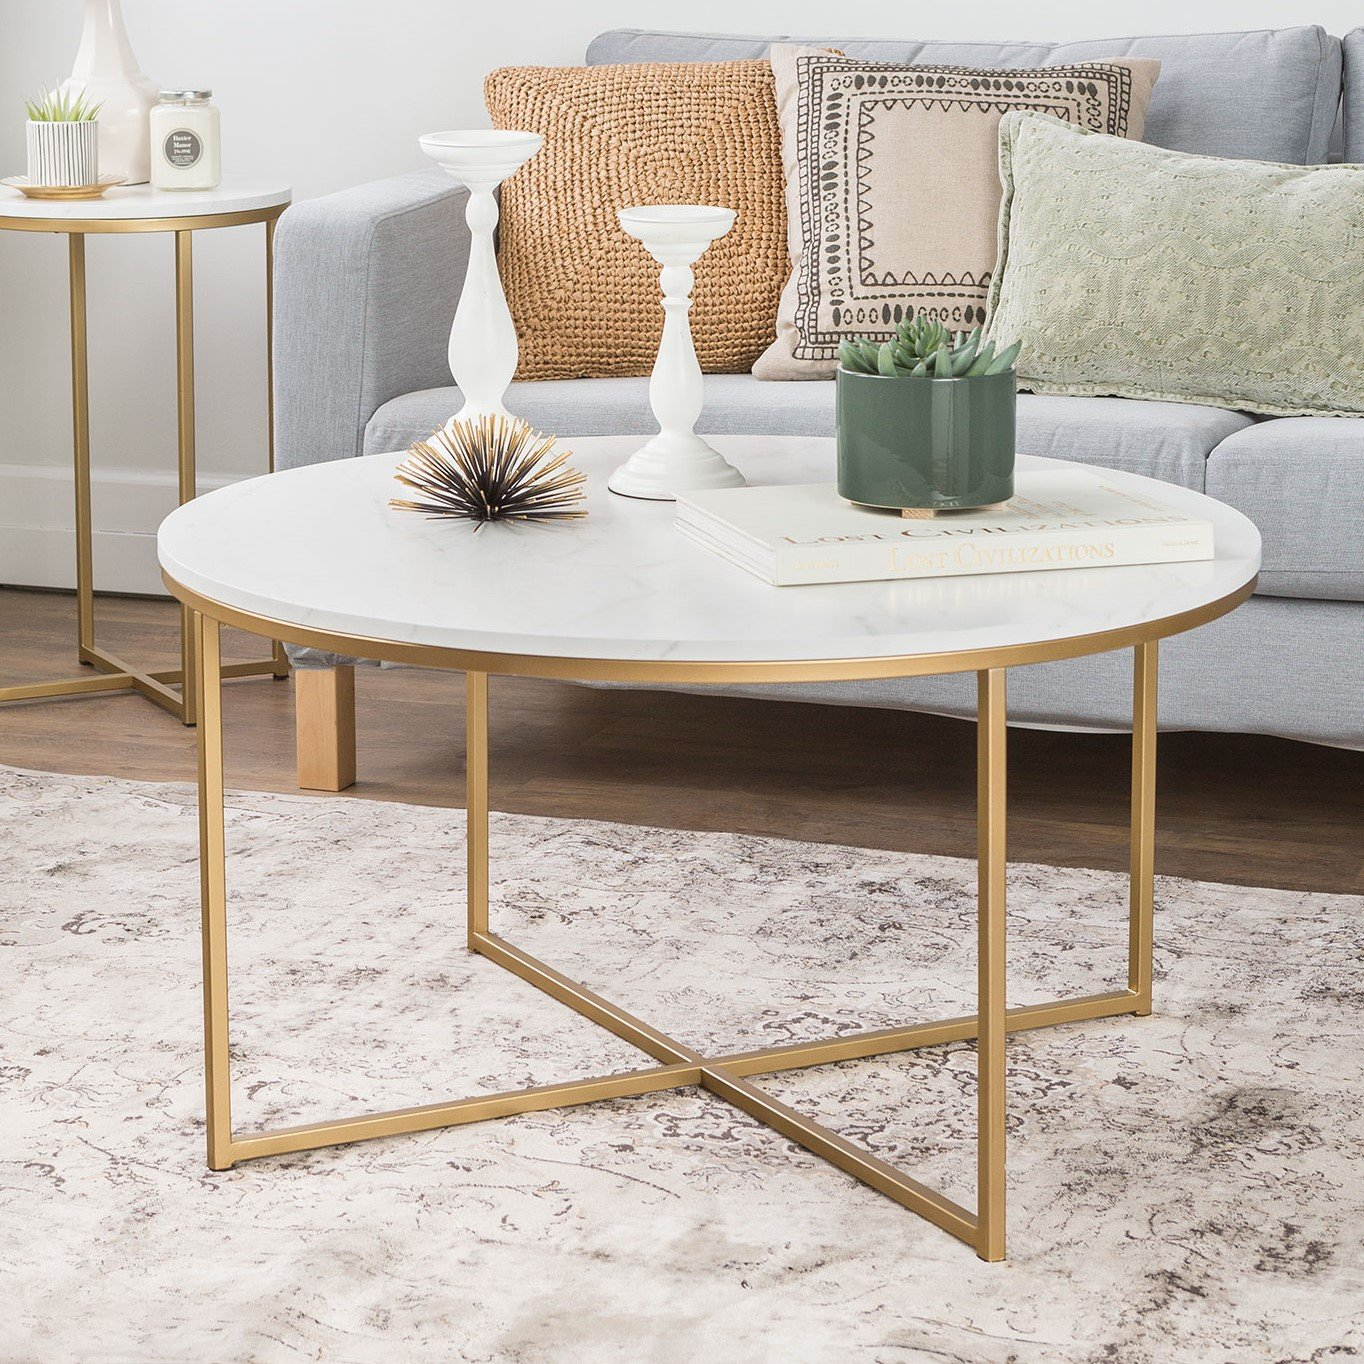 Alissa Coffee Table In 2021 Living Room Accent Tables Gold Coffee Table Coffee Table [ 1364 x 1364 Pixel ]